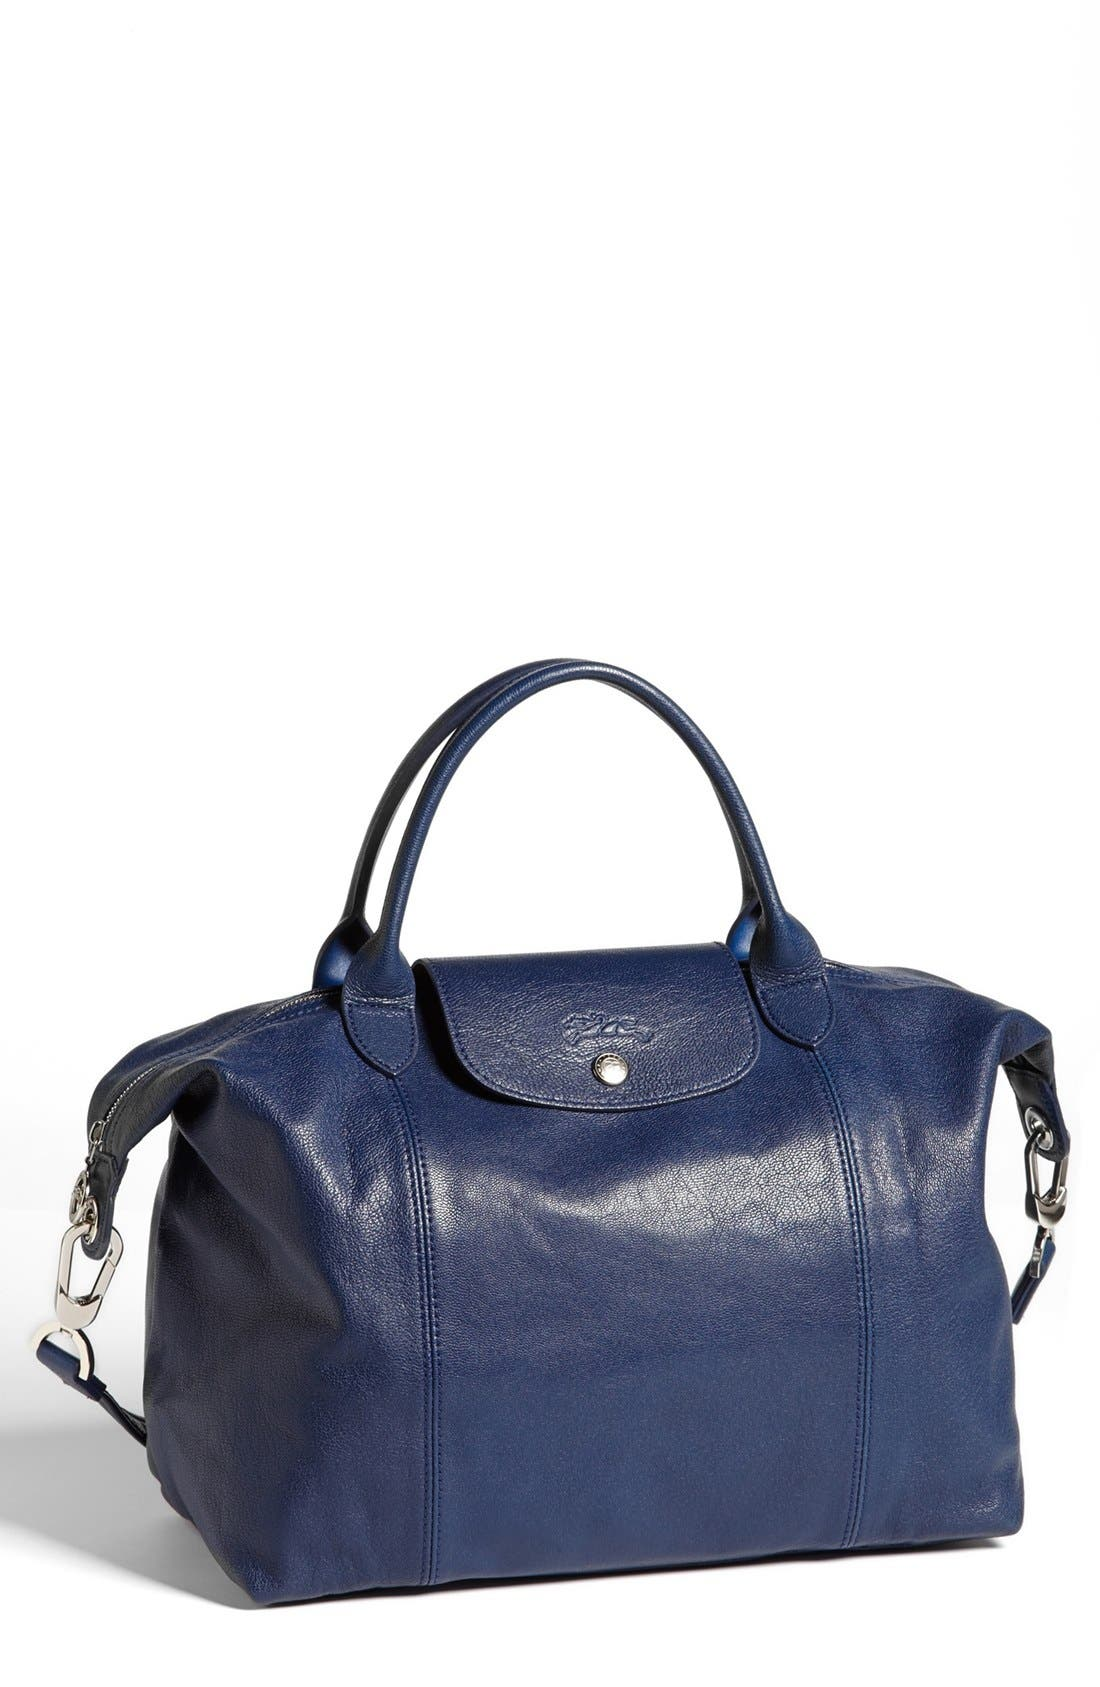 Medium 'Le Pliage Cuir' Leather Top Handle Tote,                             Main thumbnail 15, color,